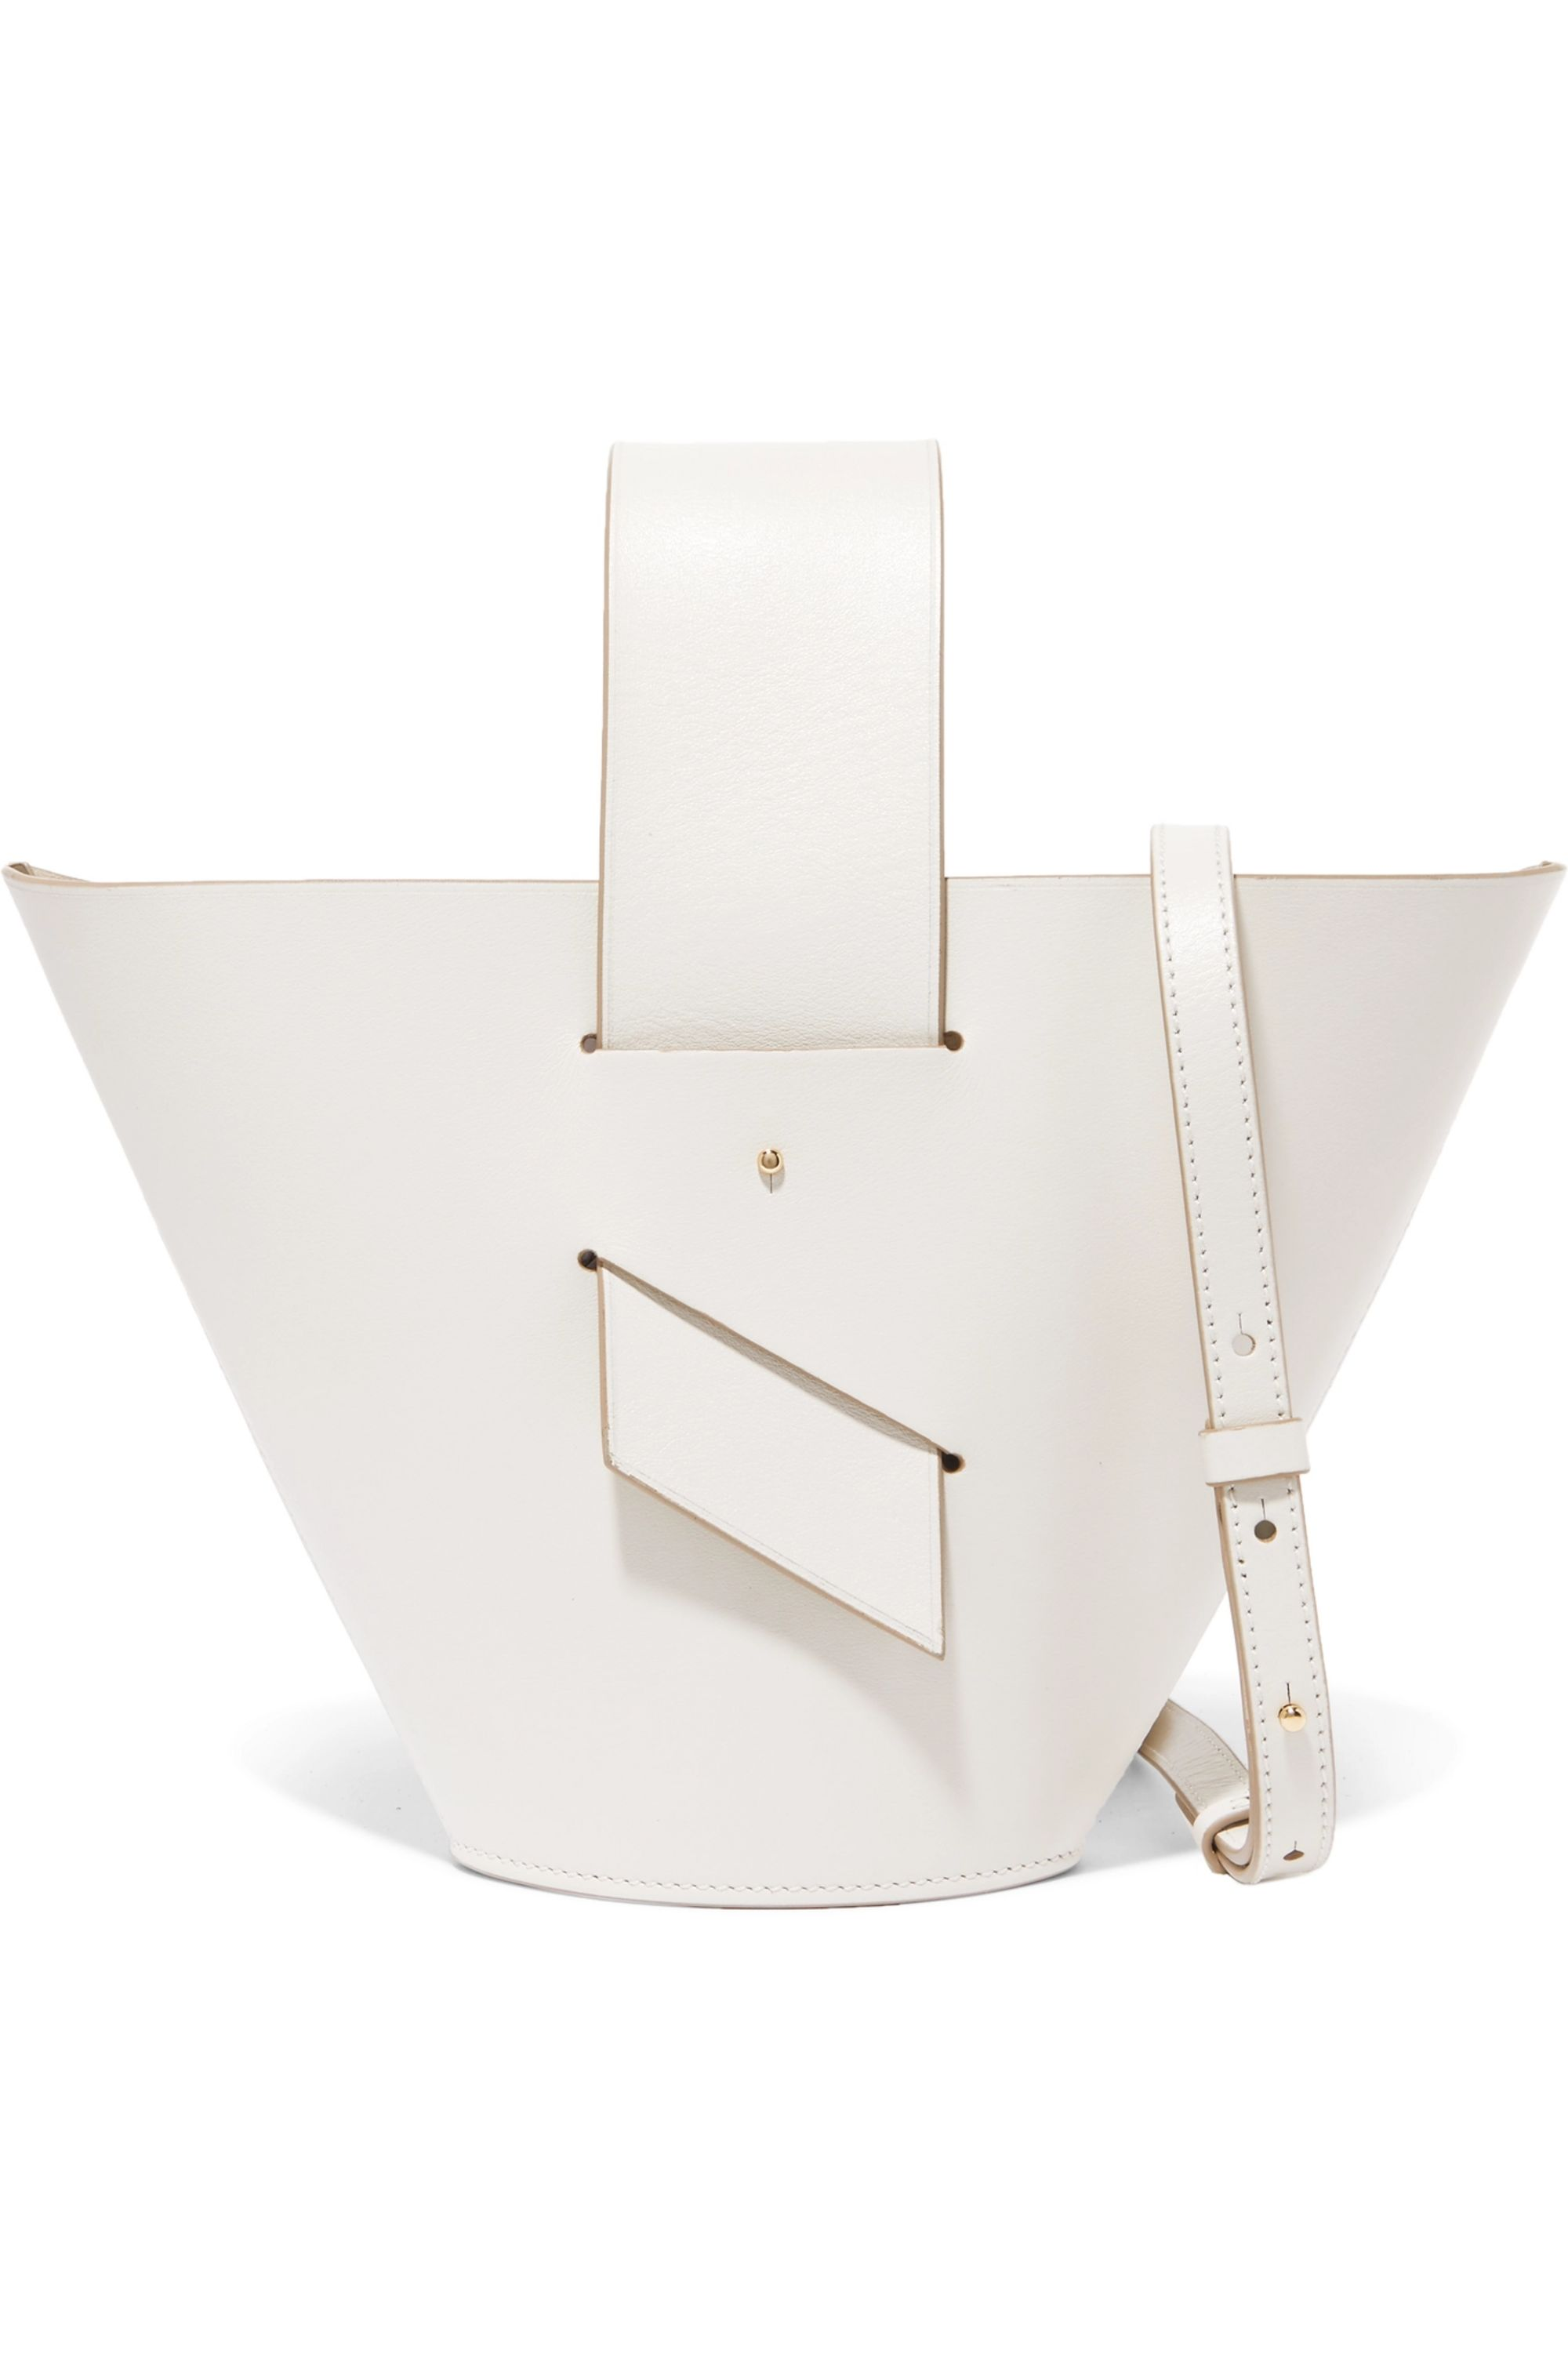 Carolina Santo Domingo Amphora leather tote